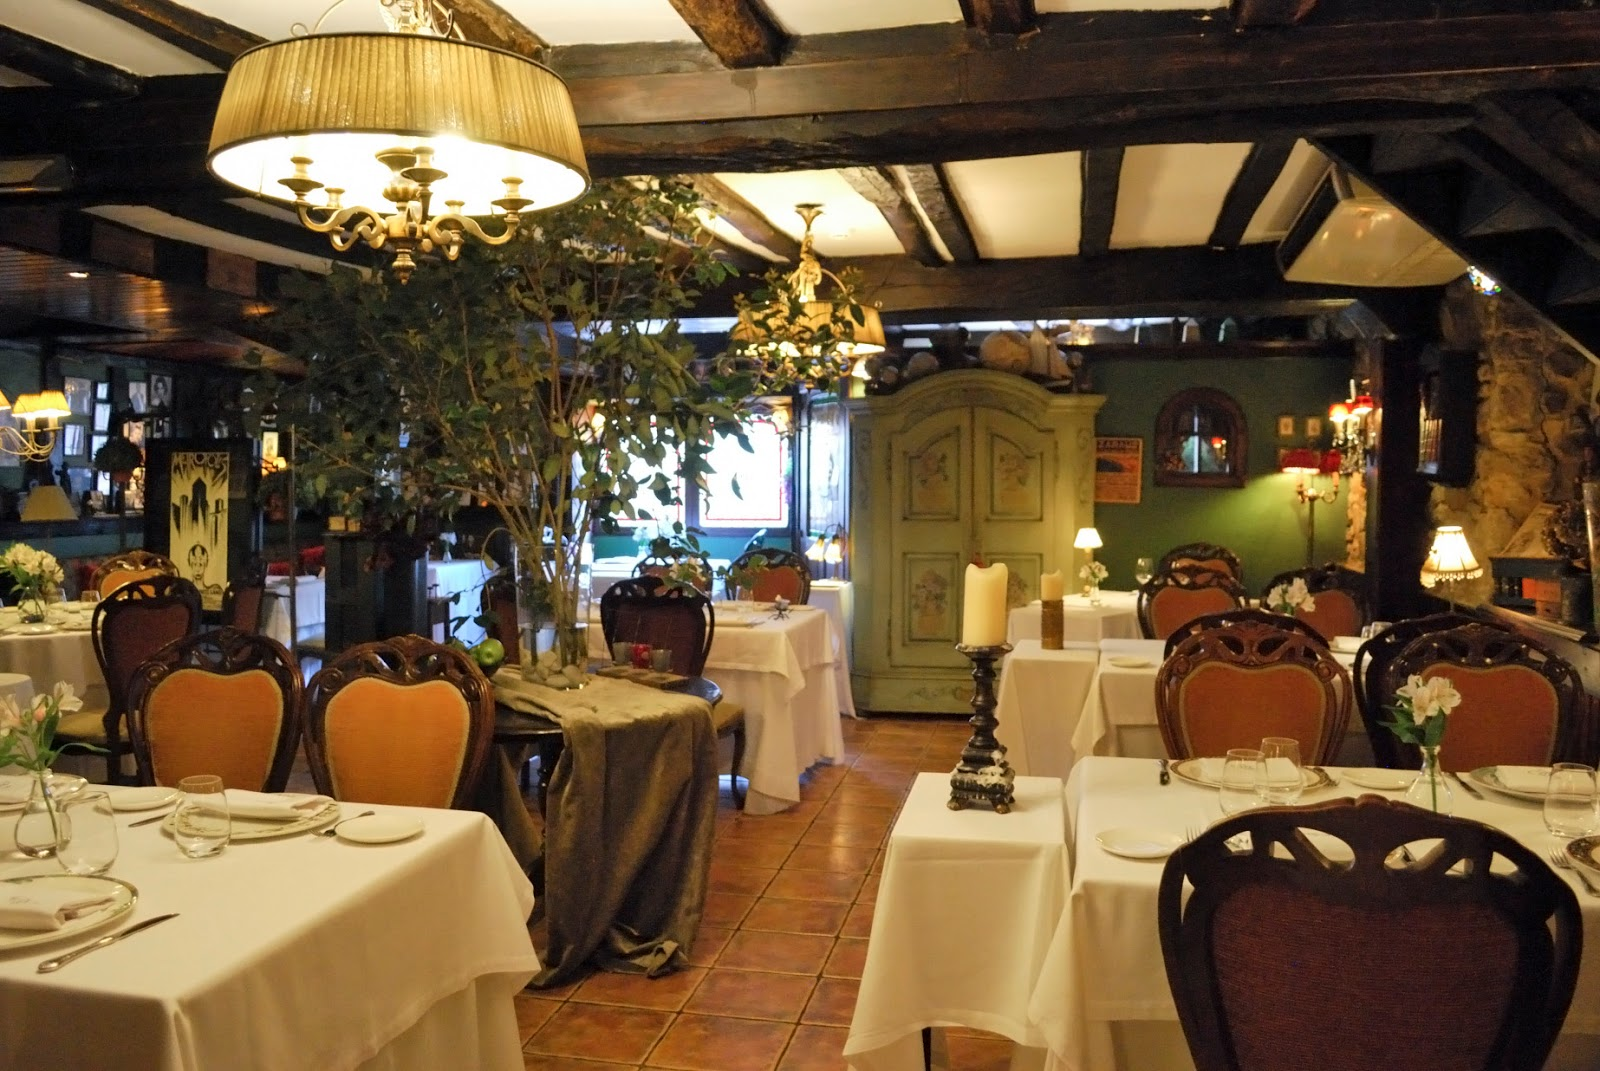 restaurante otzarreta zarautz san sebastian